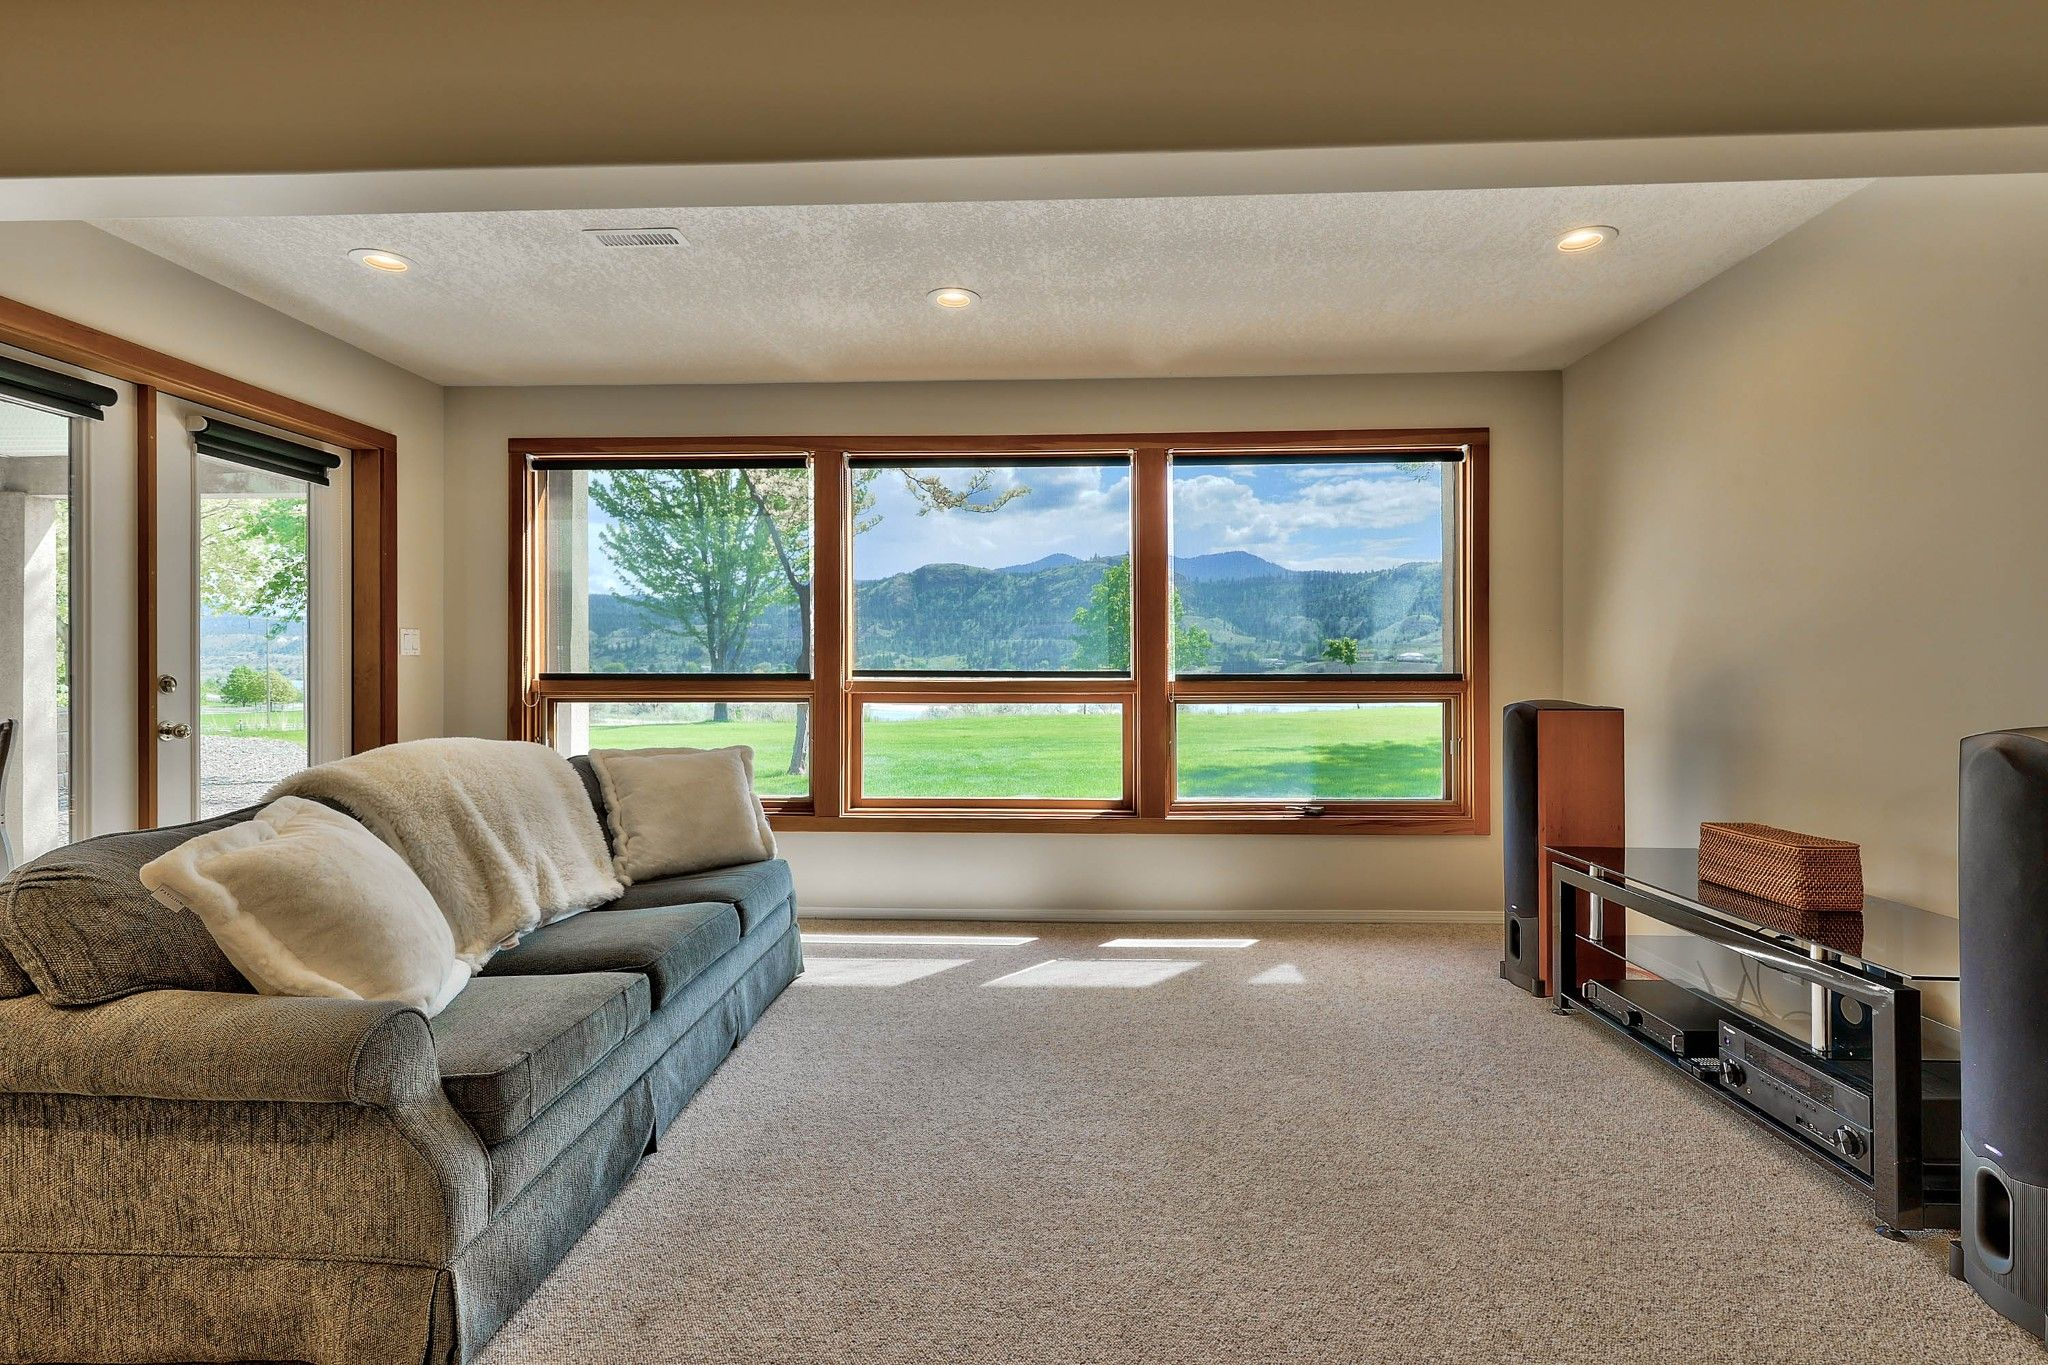 Photo 30: Photos: 3299 E Shuswap Road in Kamloops: South Thompson Valley House for sale : MLS®# 162162